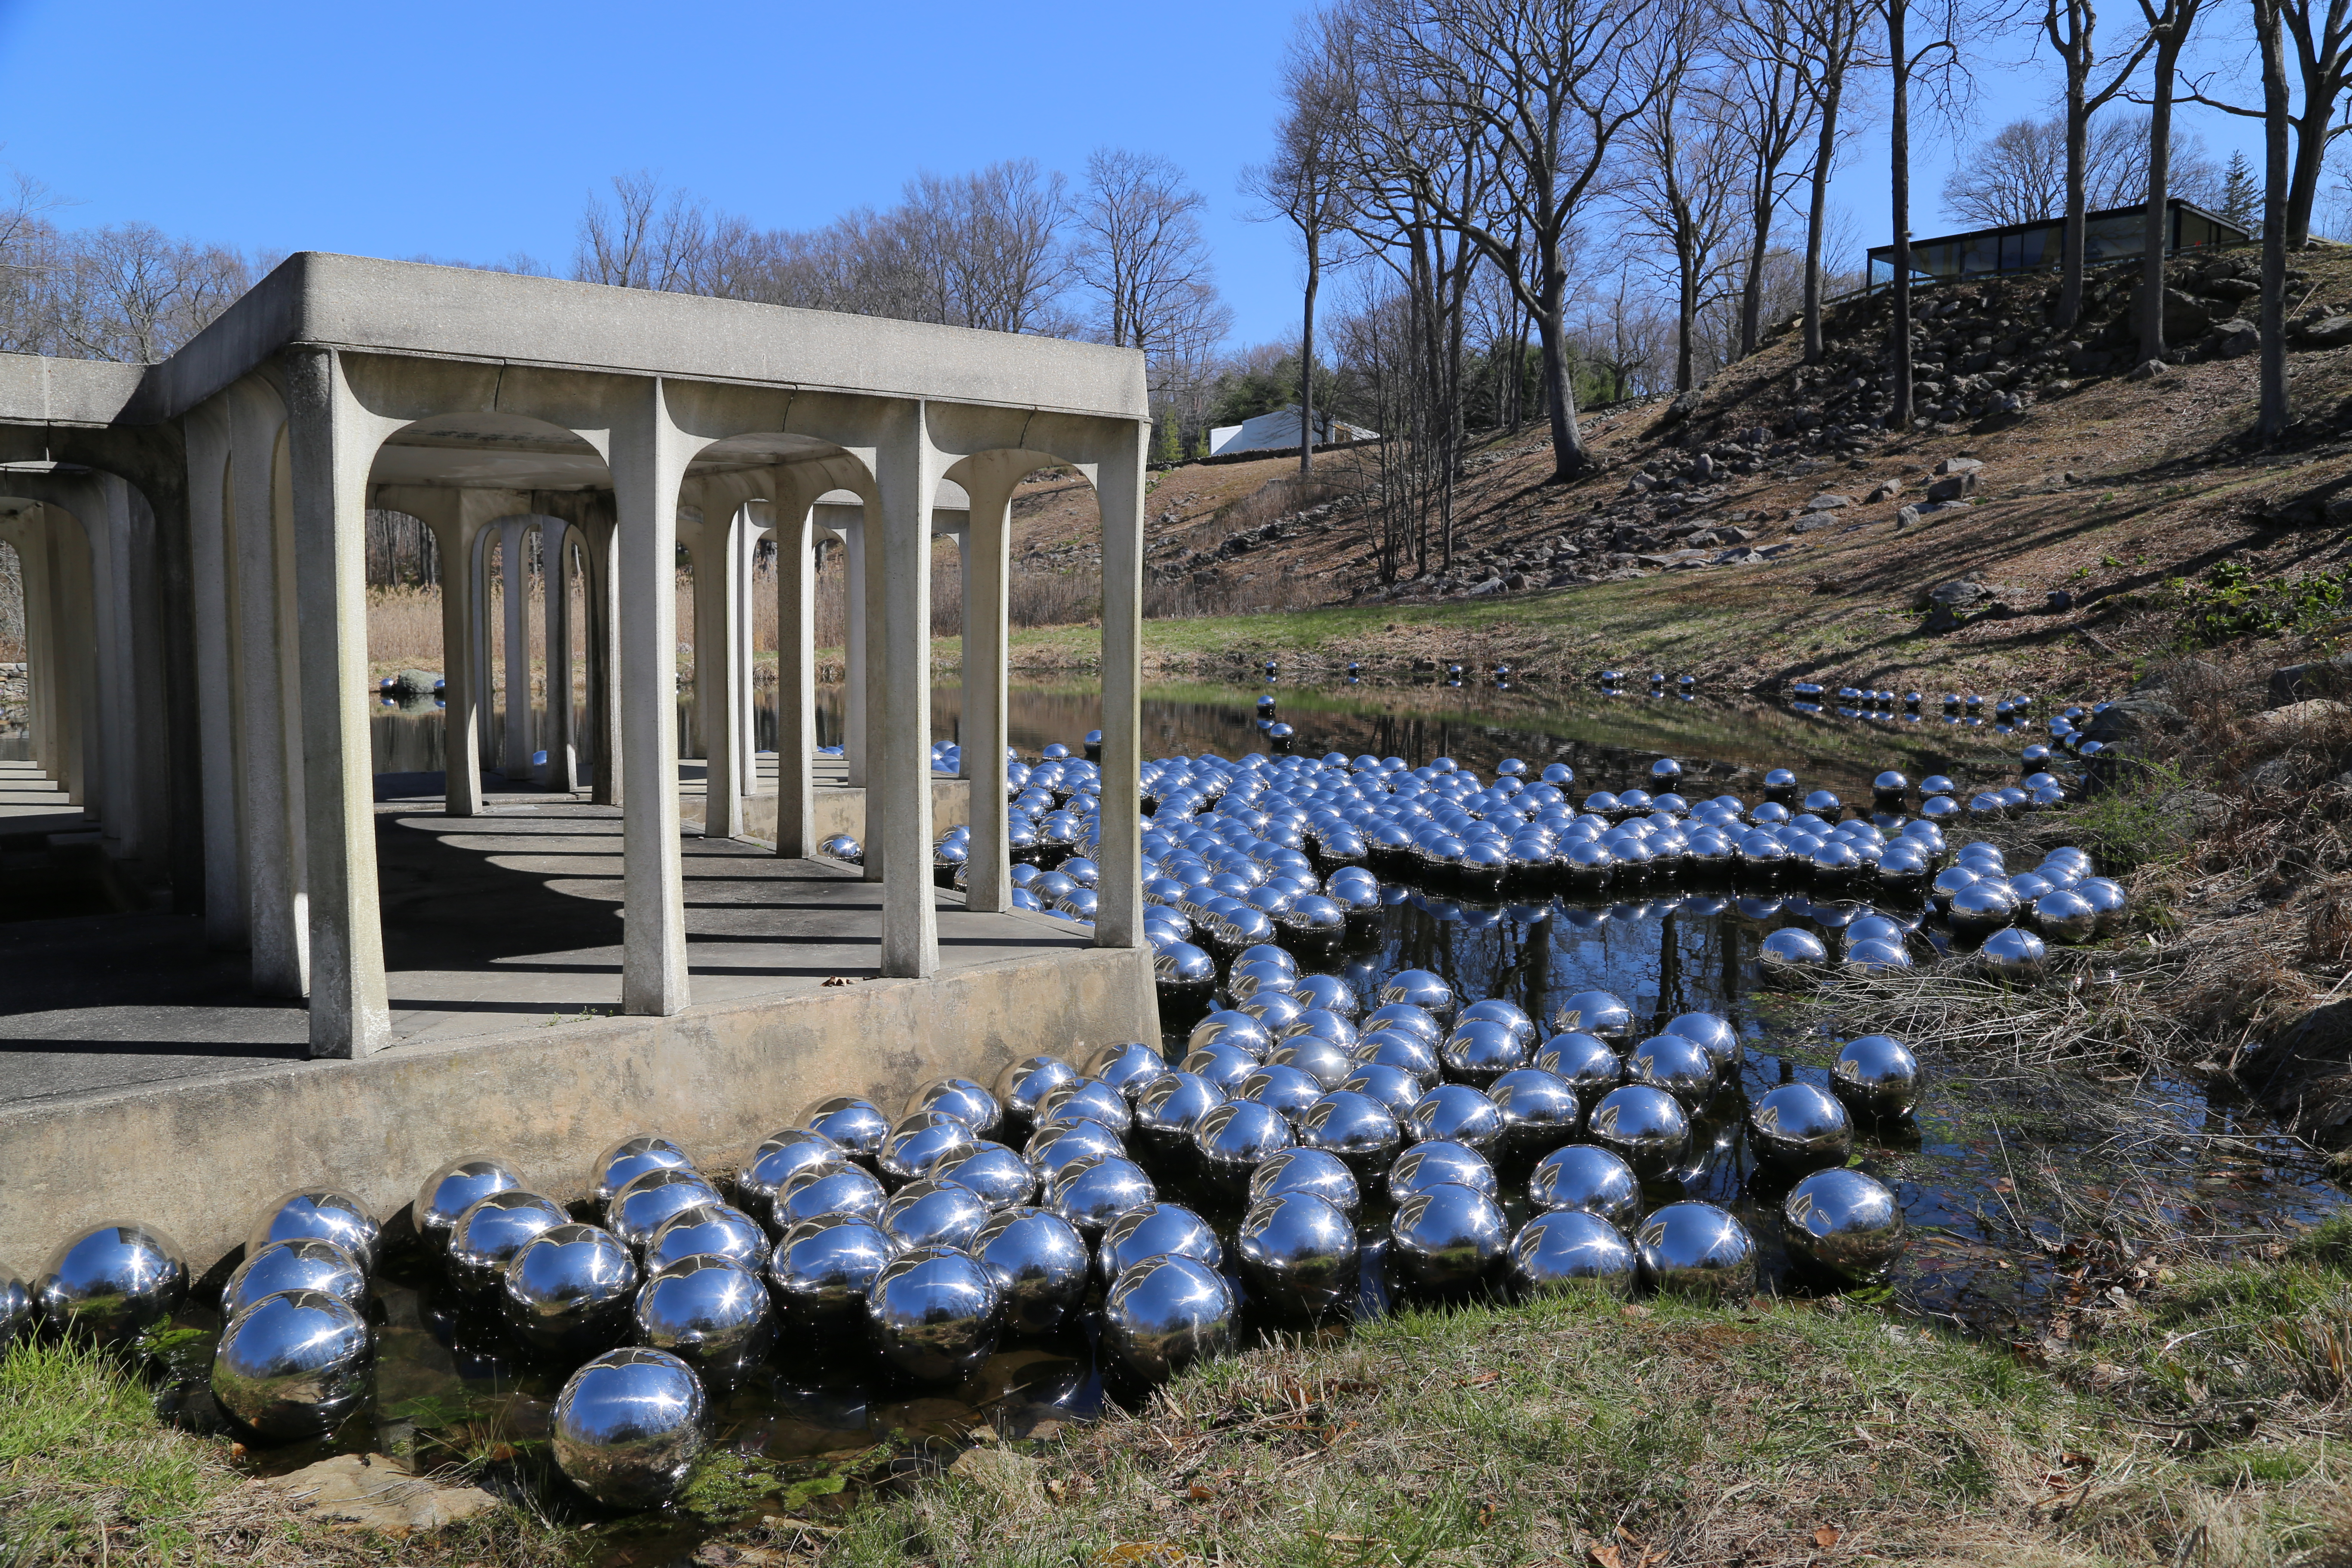 yayoi kusama's narcissus garden at the glass house - archpaper